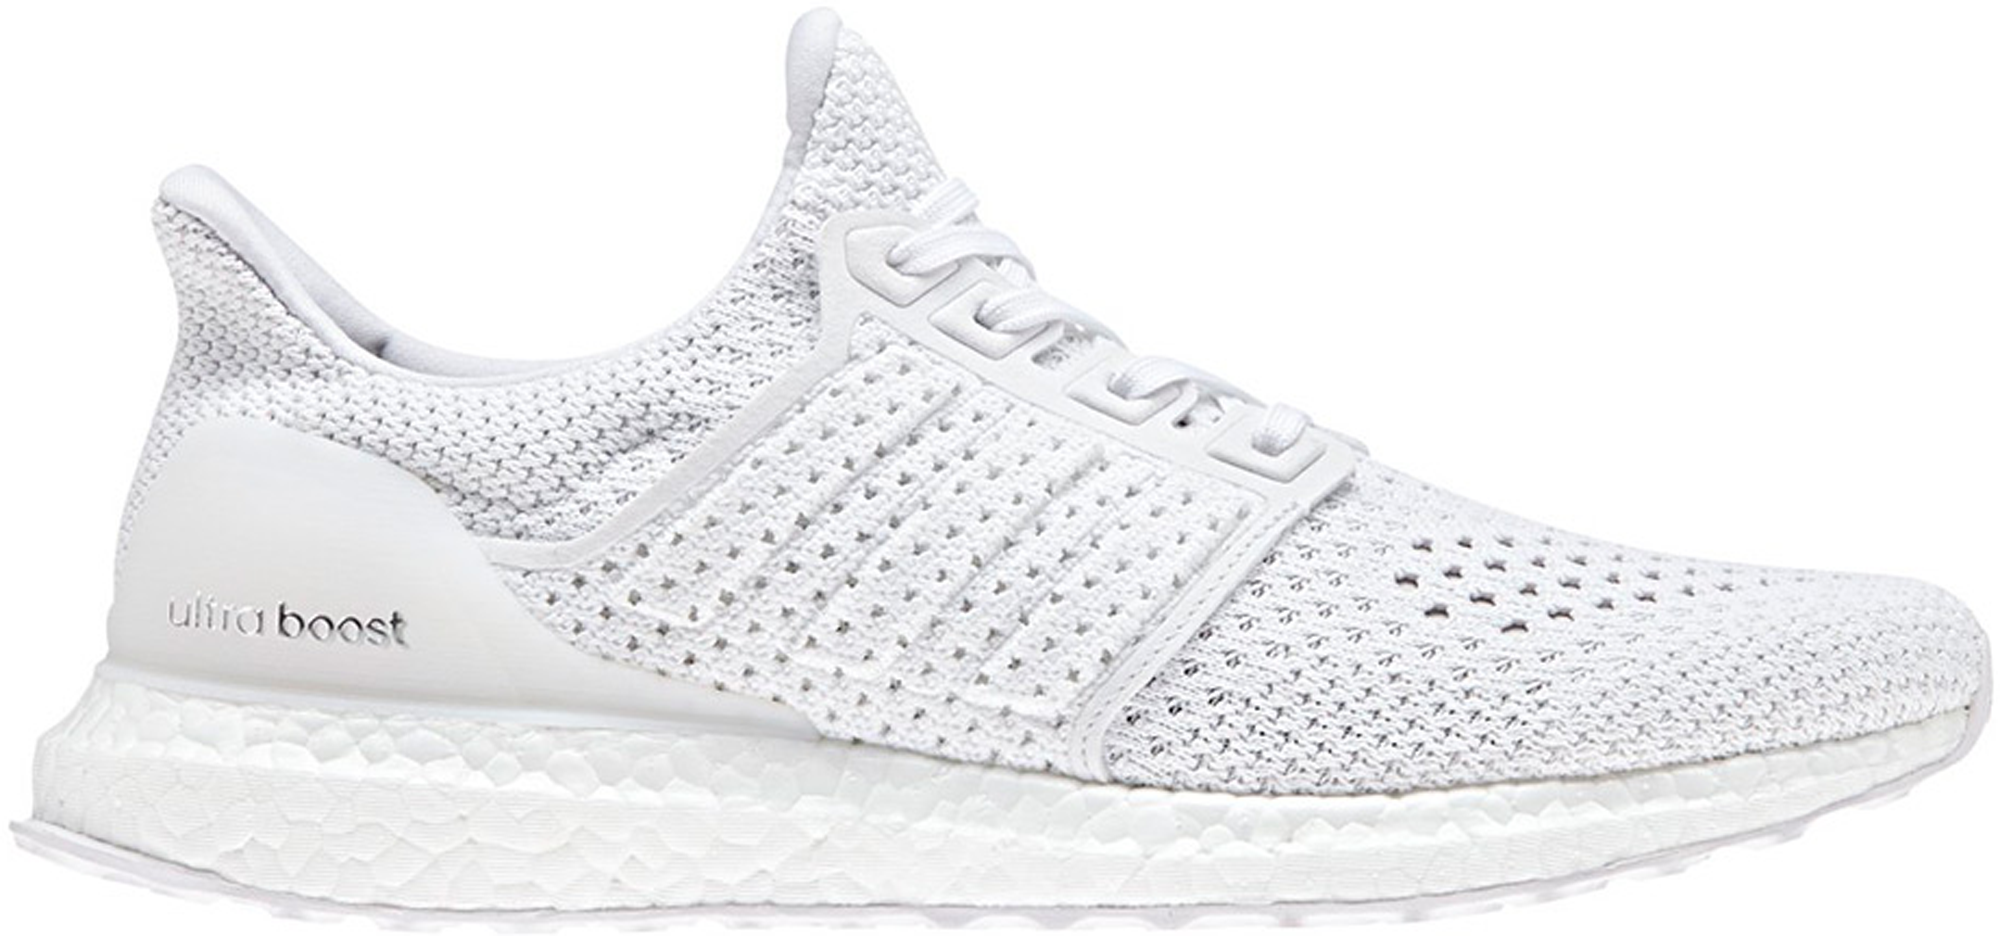 Adidas UltraBOOST Clima sneakers price in Doha Qatar